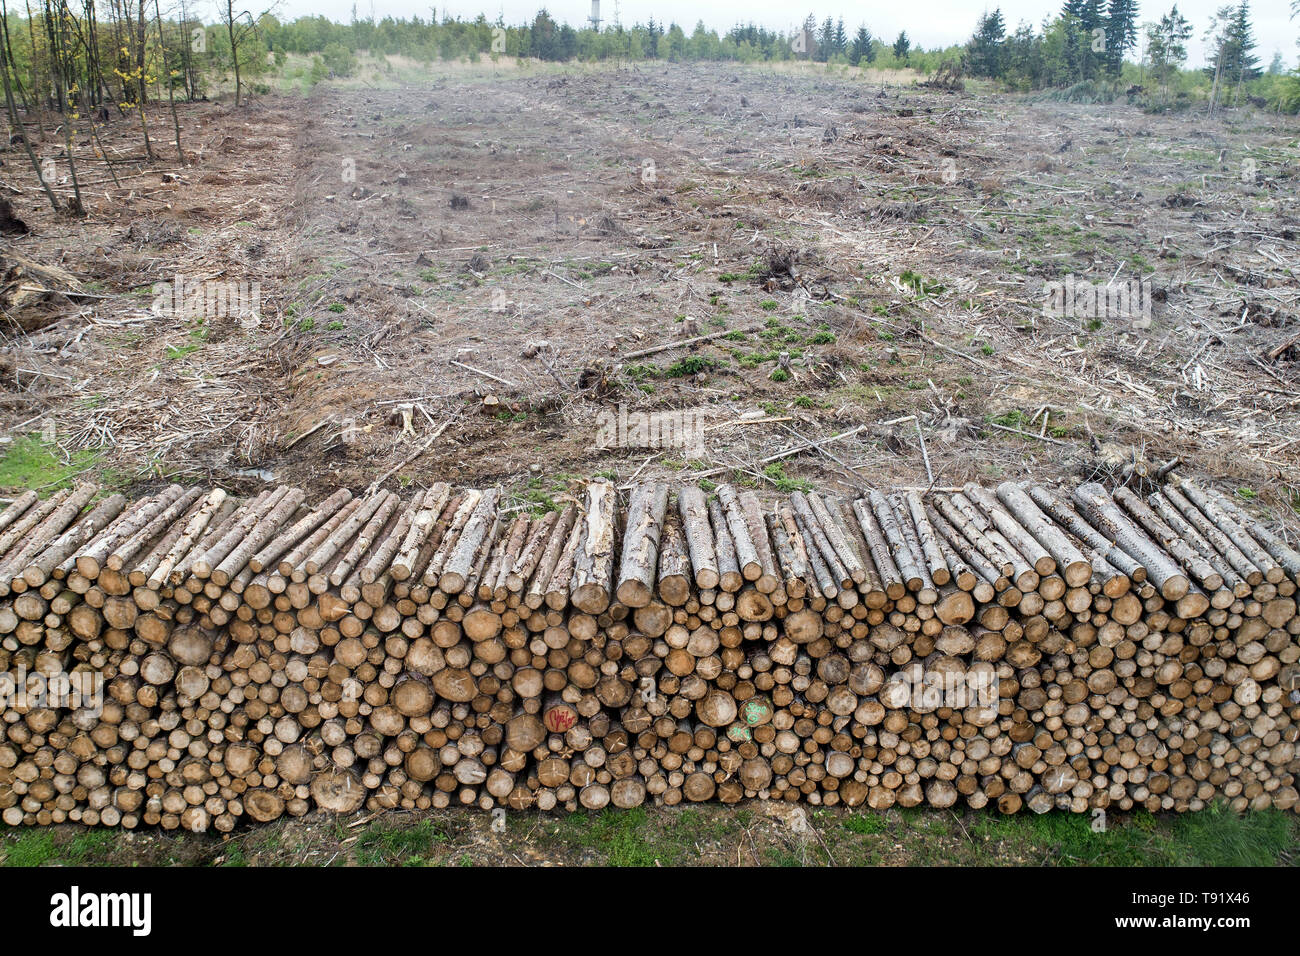 Sankt Ottilien, Germany. 16th May, 2019. Spruce trunks are lined up in front of a forest area in the Söhrewald affected by the windthrow. After the drought of 2018, trees are weakened and susceptible to bark beetle infestation. Credit: Swen Pförtner/dpa/Alamy Live News - Stock Image